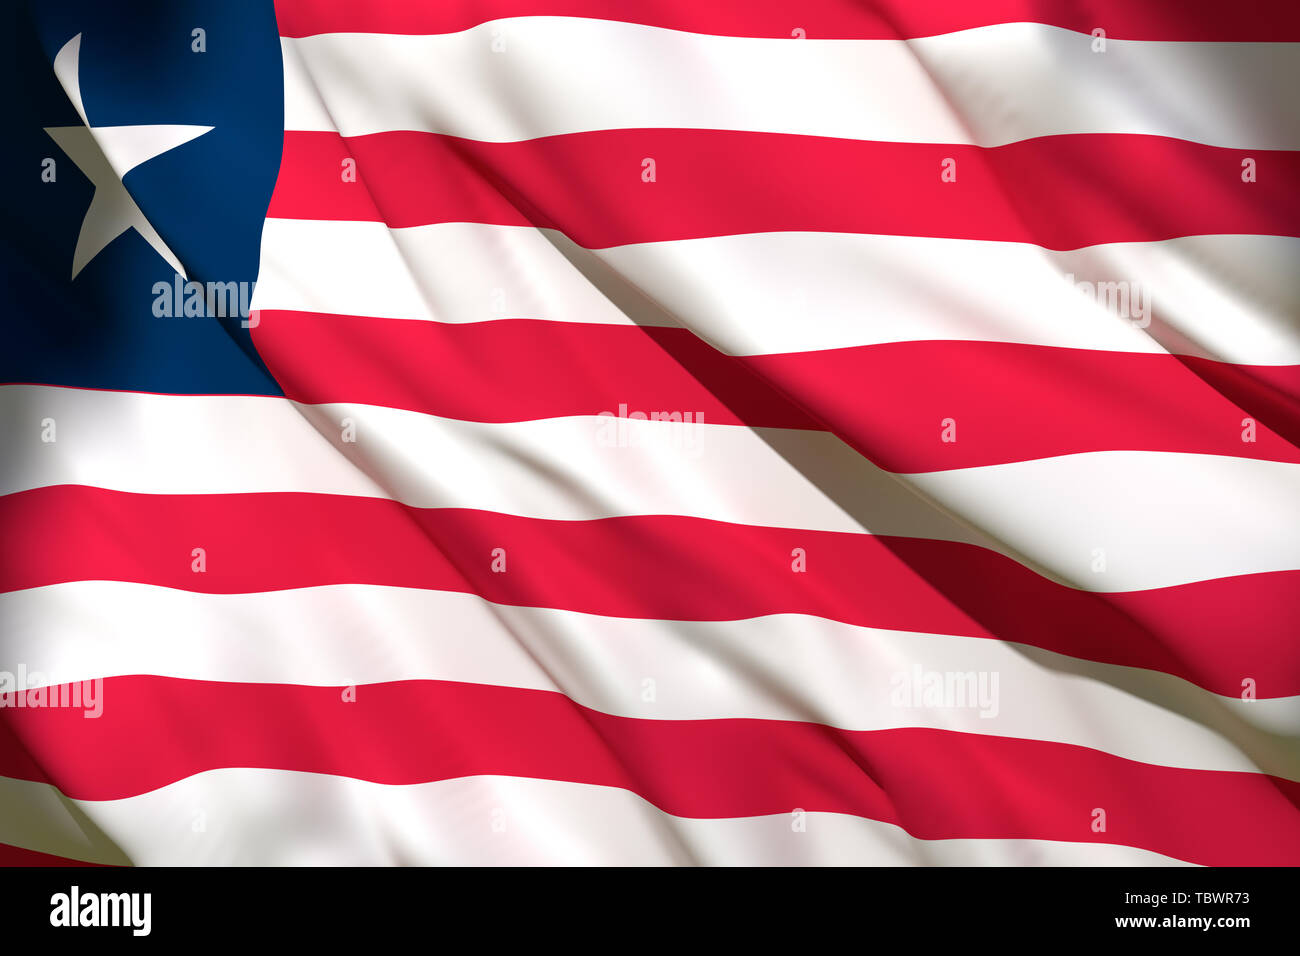 3d rendering of a Liberia national flag waving - Stock Image